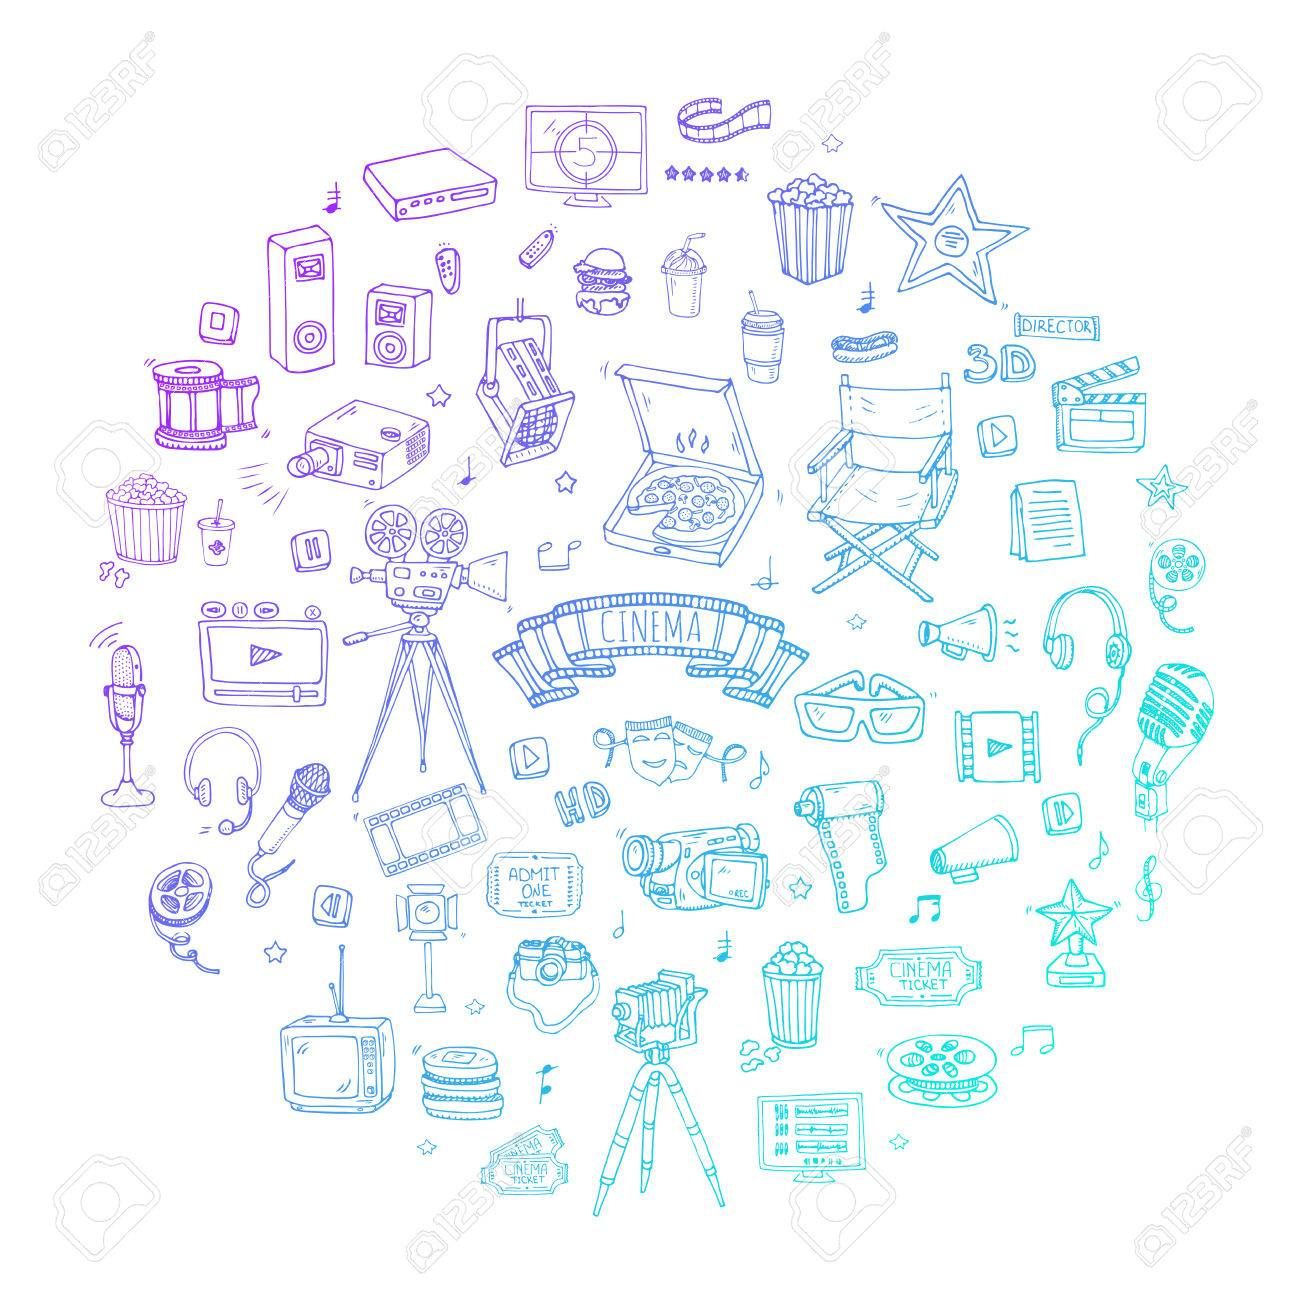 Hand Drawn Doodle Cinema Set Vector Illustration. Movie Making.. Royalty  Free Cliparts, Vectors, And Stock Illustration. Image 96612407.